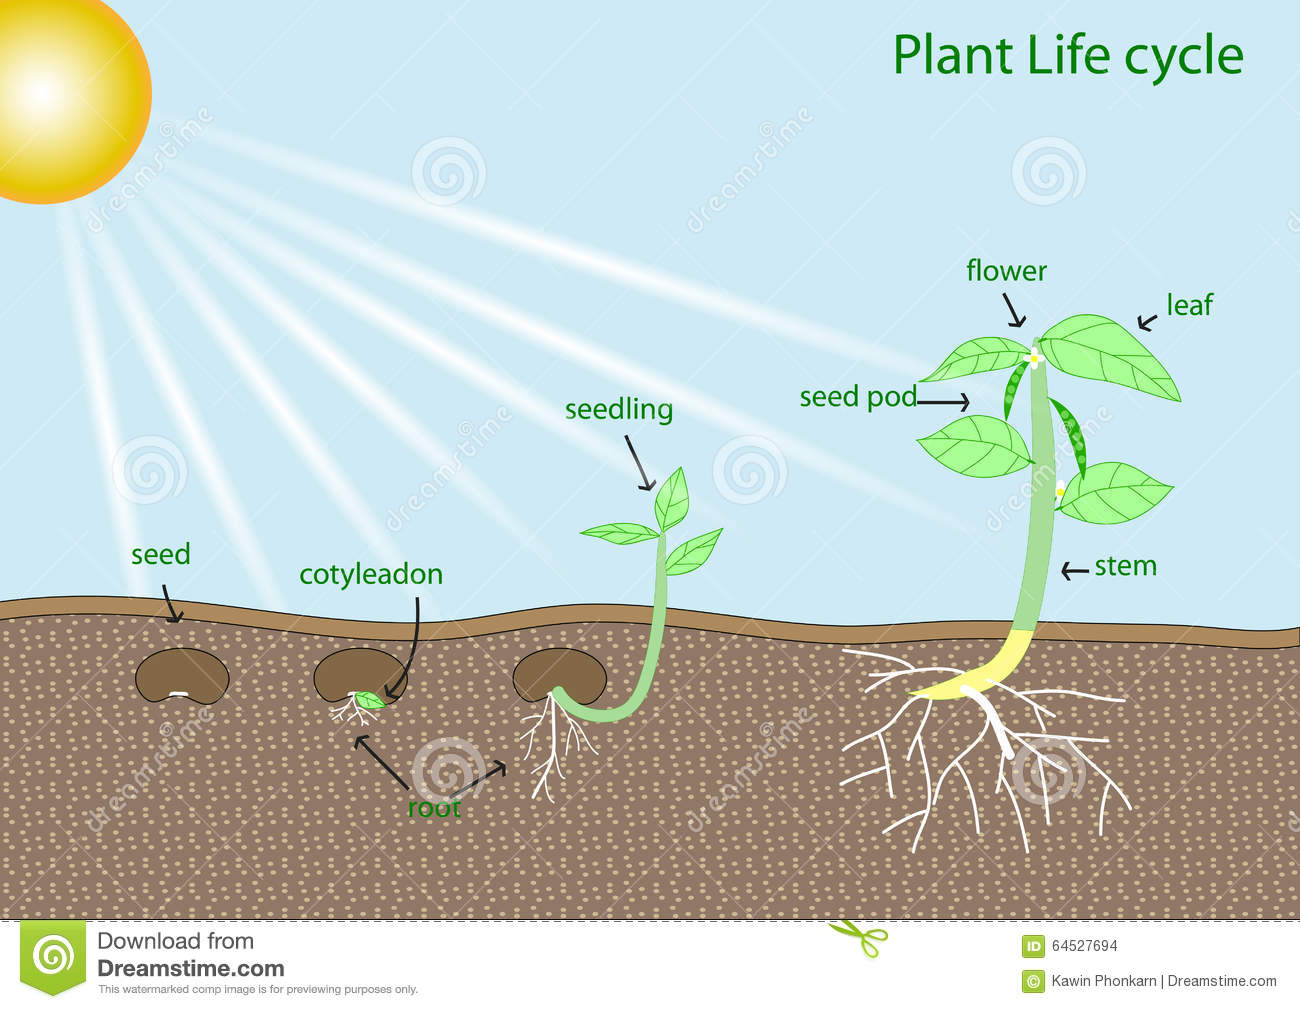 Plant life cycle stock vector. Image of element, seed ...